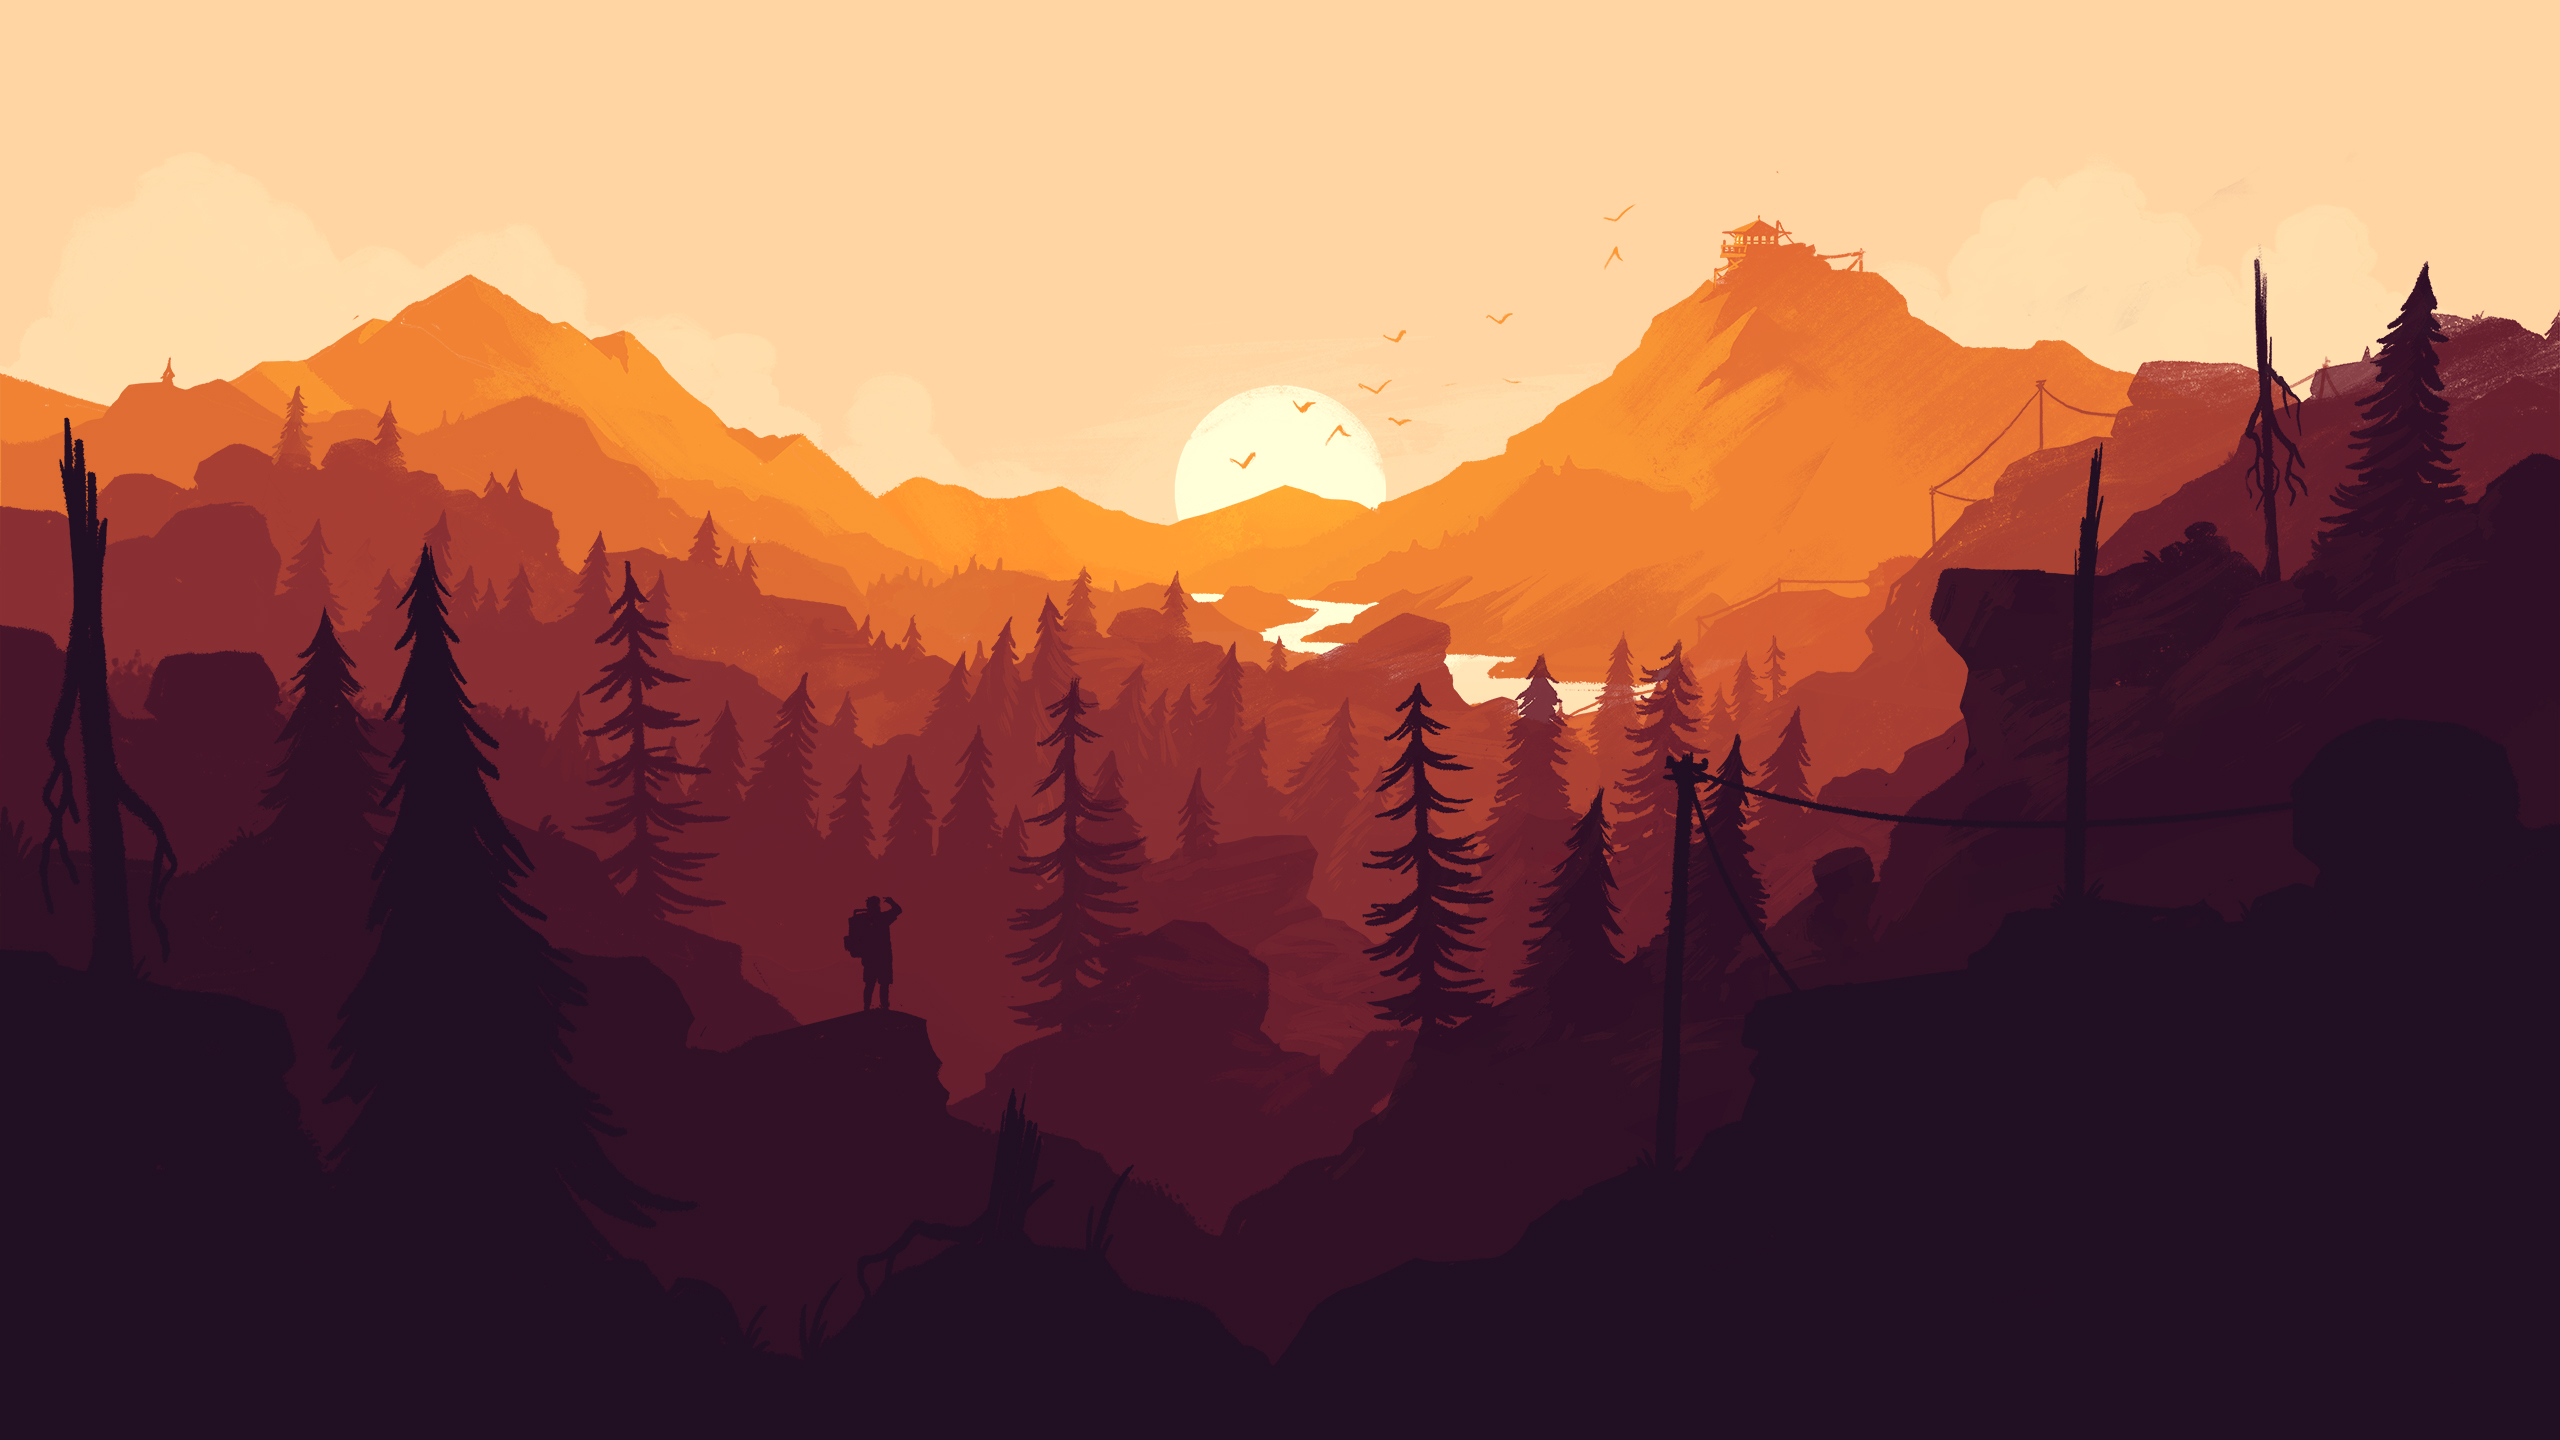 Rog Animated Wallpaper Firewatch Wallpaper For Iphone And Desktop